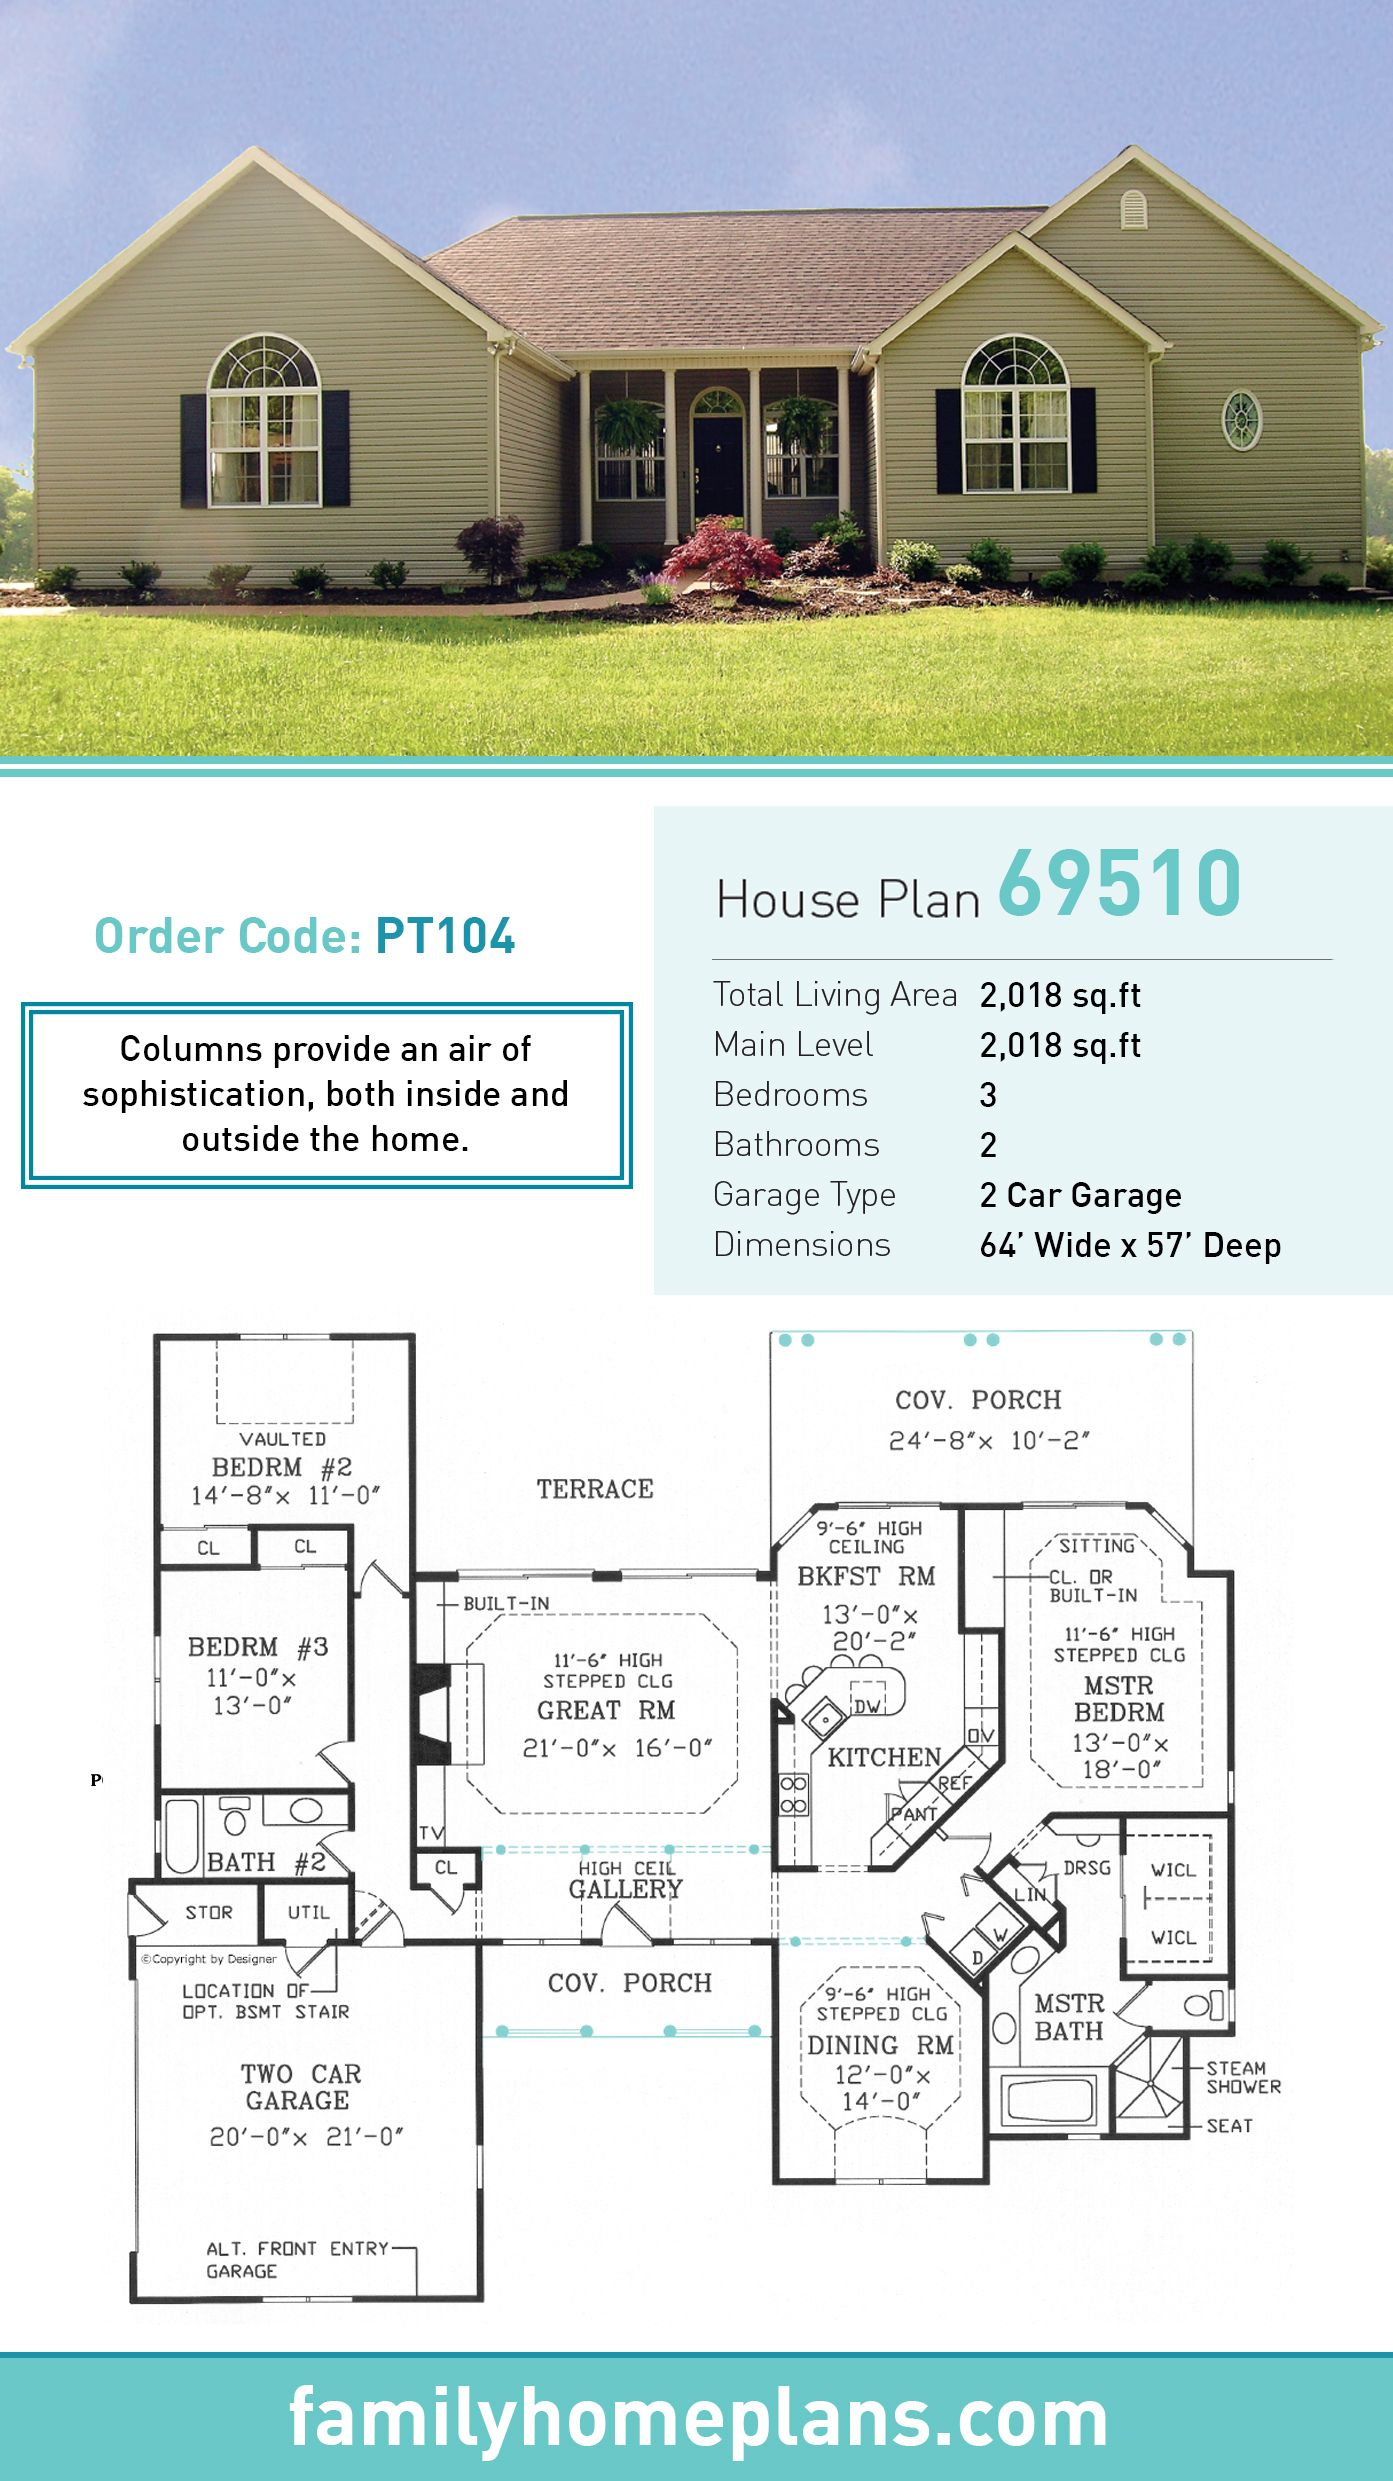 European Style House Plan 69510 with 3 Bed, 2 Bath, 2 Car ... on european duplex house plans, brick ranch style house plans, cottage style ranch house plans, european cottage home plans, european country house plans,